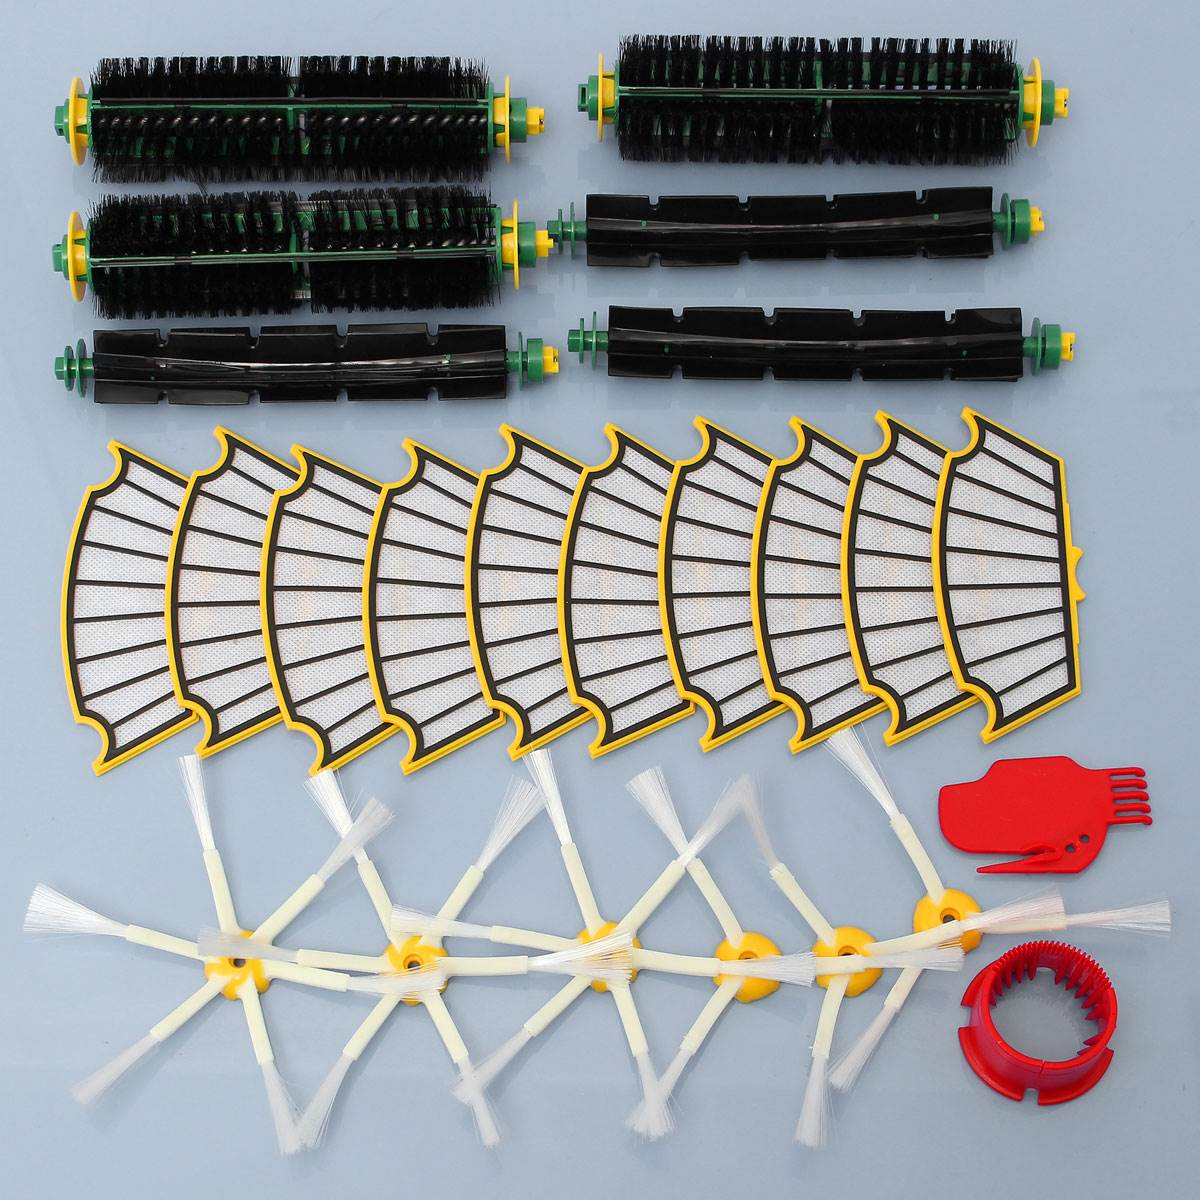 24Pcs Replacement Filter Bristle/Beater Brush Round Cleaning Tool Vacuum Cleaner Accessories Kit For i Robot R oomb 500 Series 14pcs free post new side brush filter 3 armed kit for irobot roomba vacuum 500 series clean tool flexible bristle beater brush